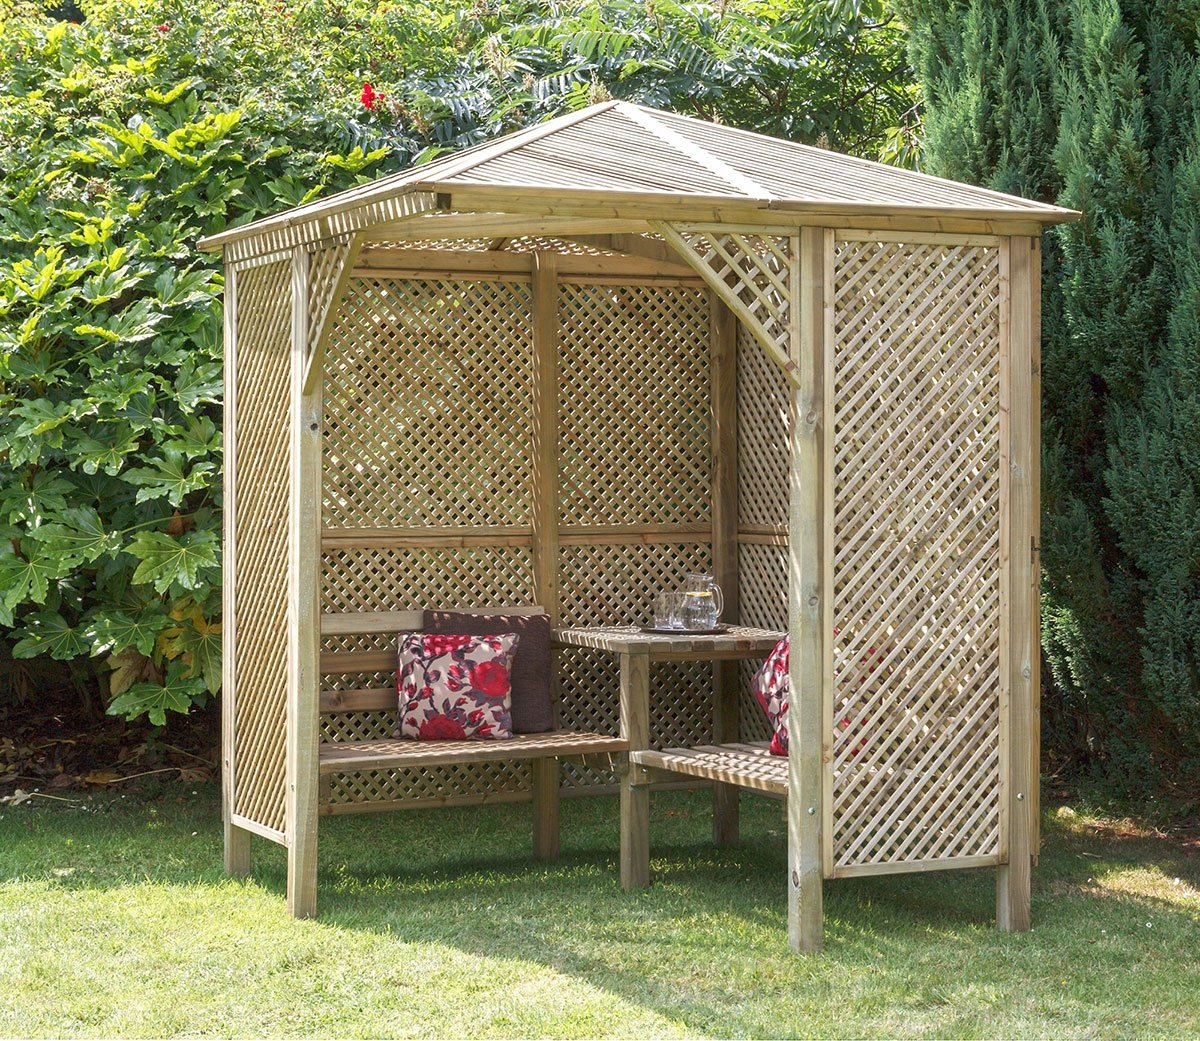 A very large gazebo style arbor with two benches and a table